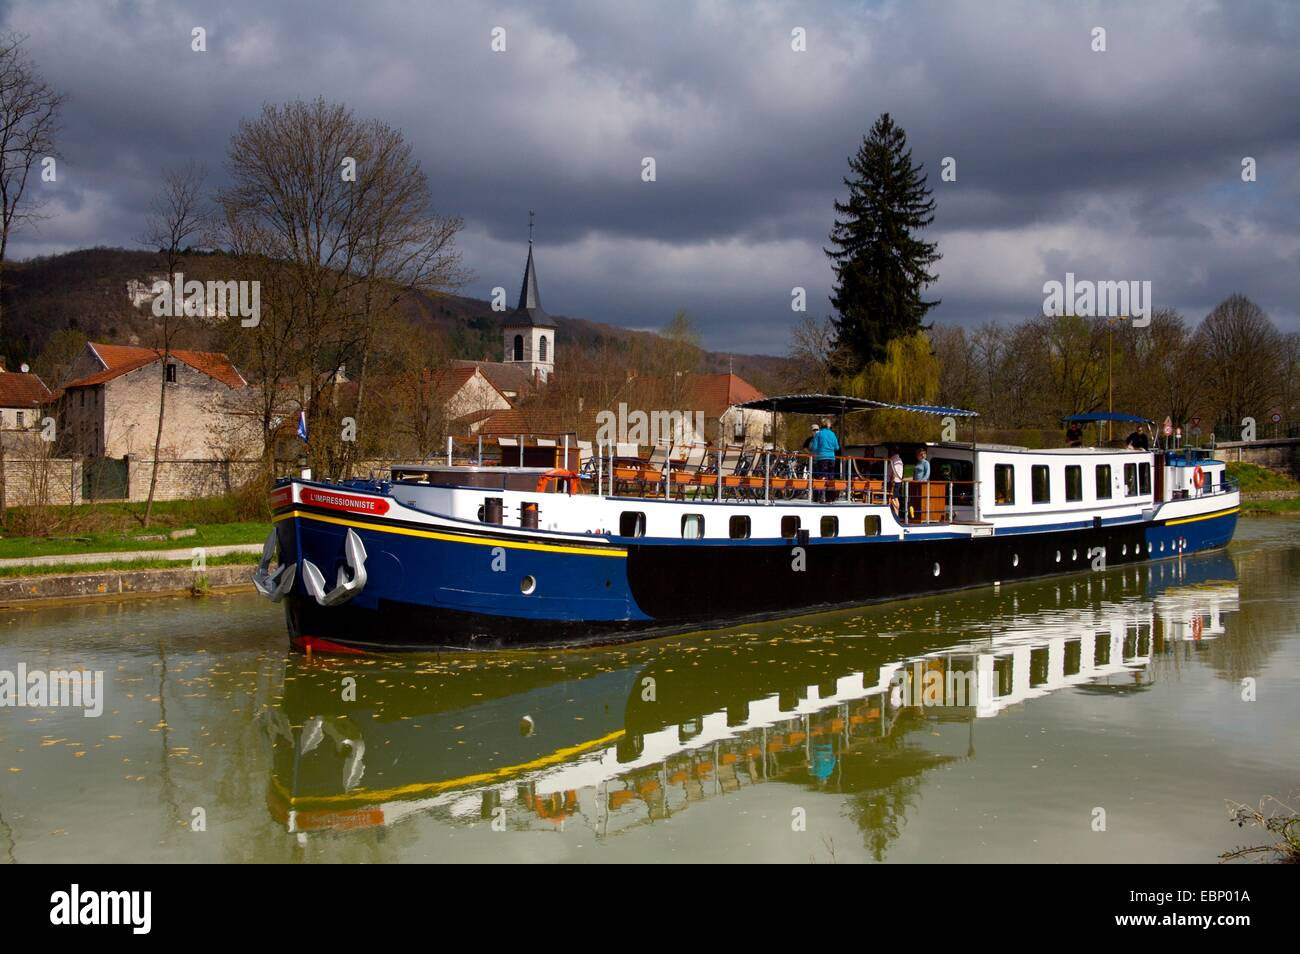 The luxury, 12-person peniche, L'impressioniste on the Burgundy Canal, France - Stock Image